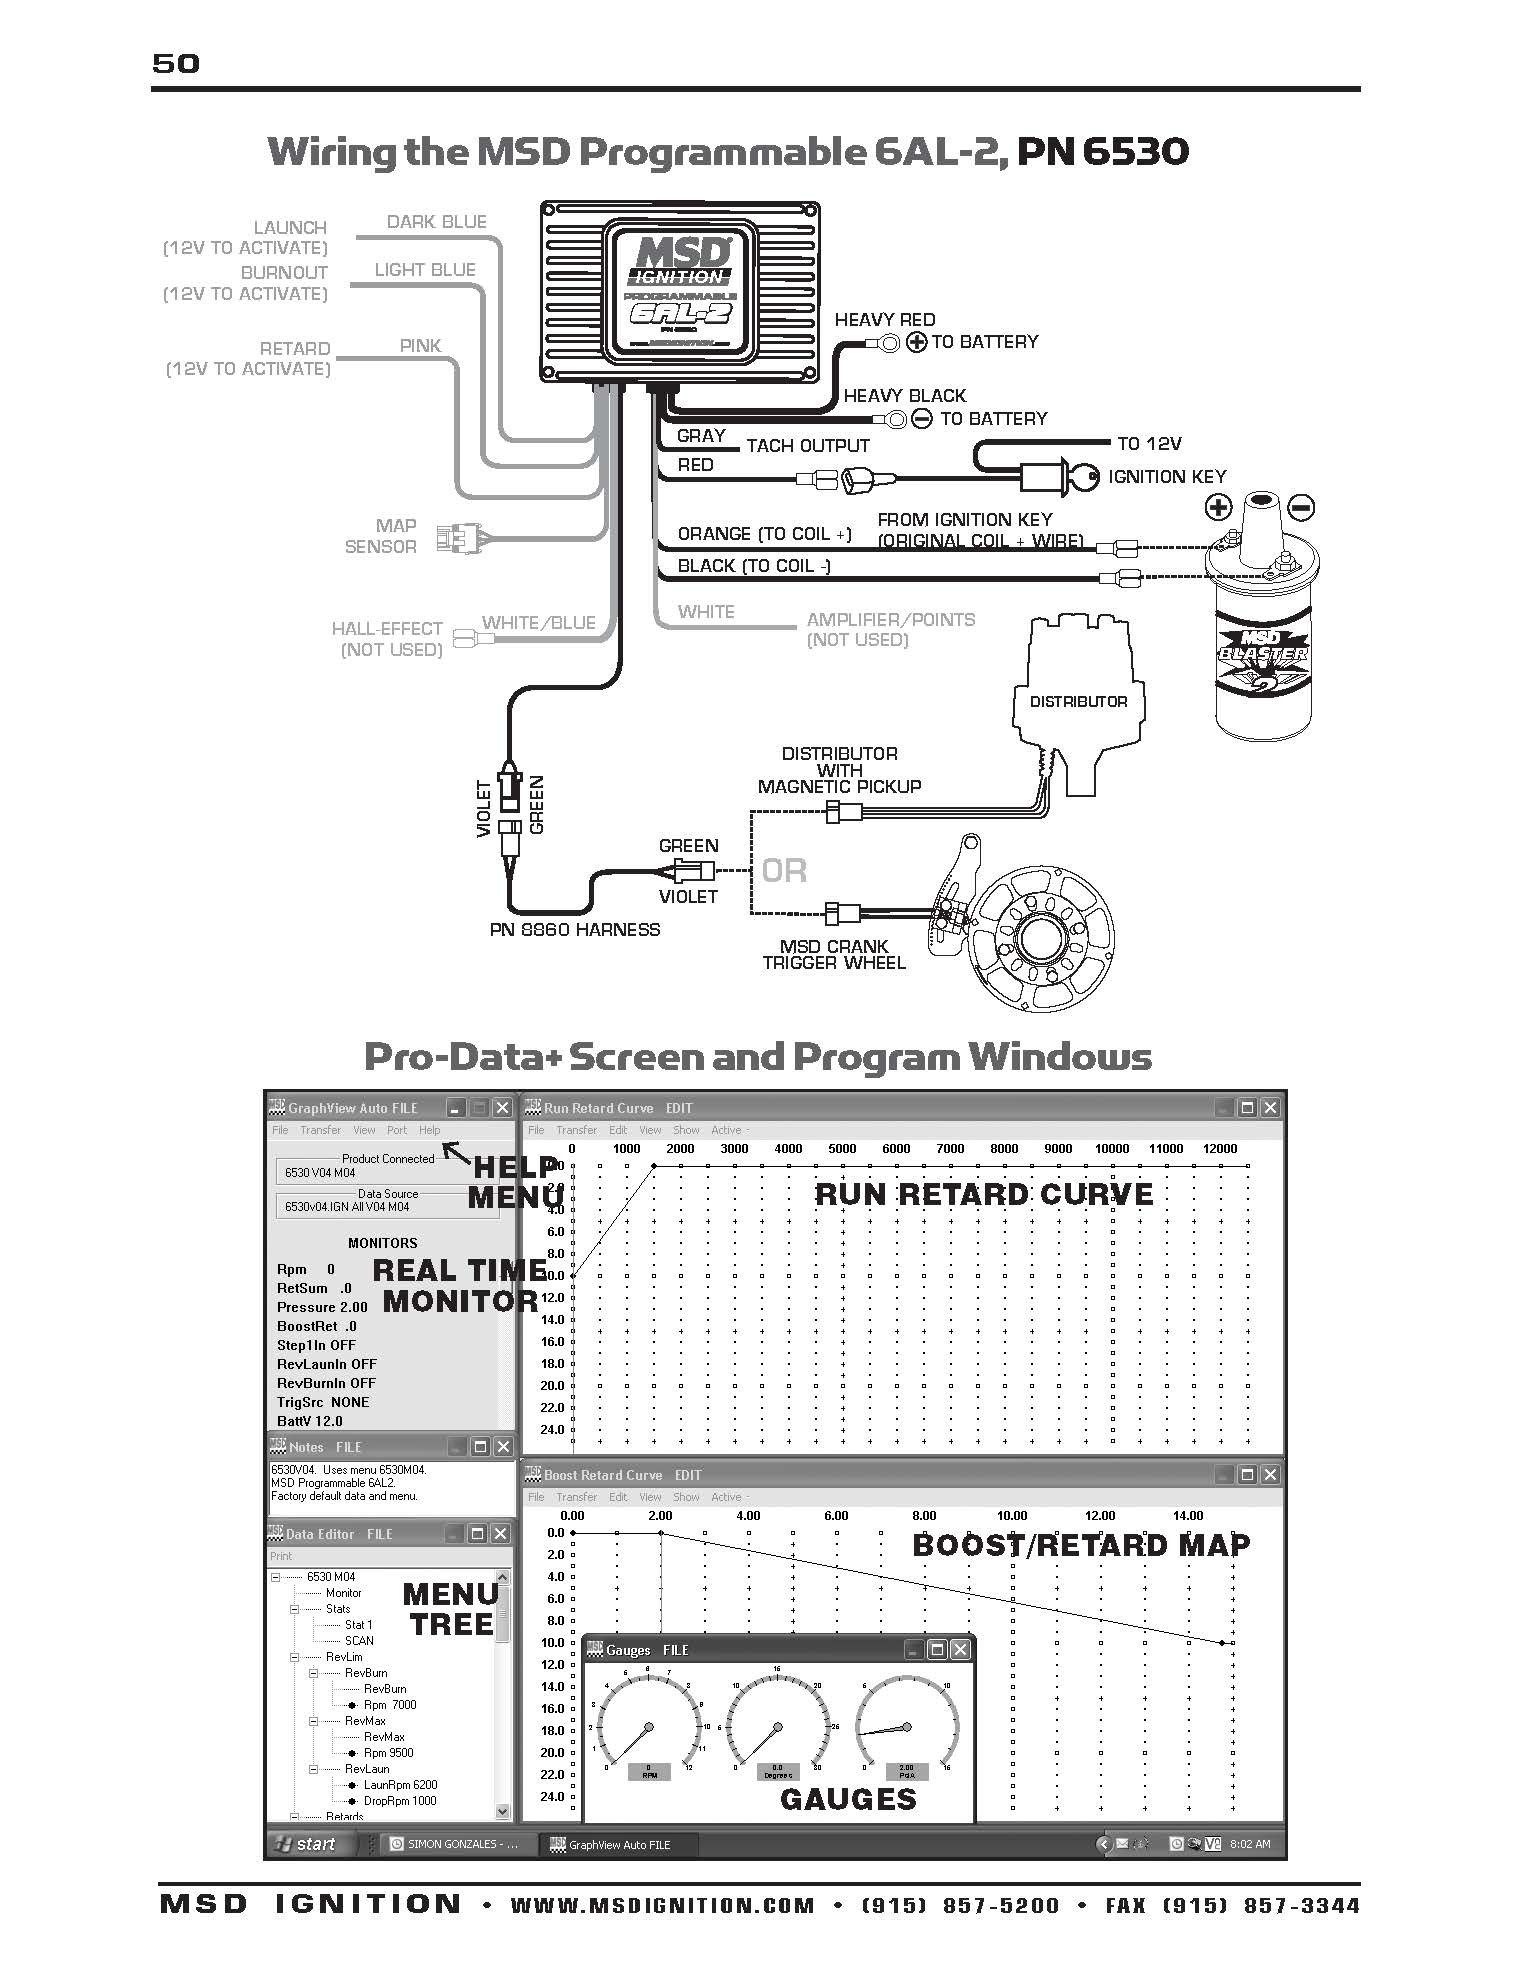 Msd Cdi Ignition Wiring - All Kind Of Wiring Diagrams •